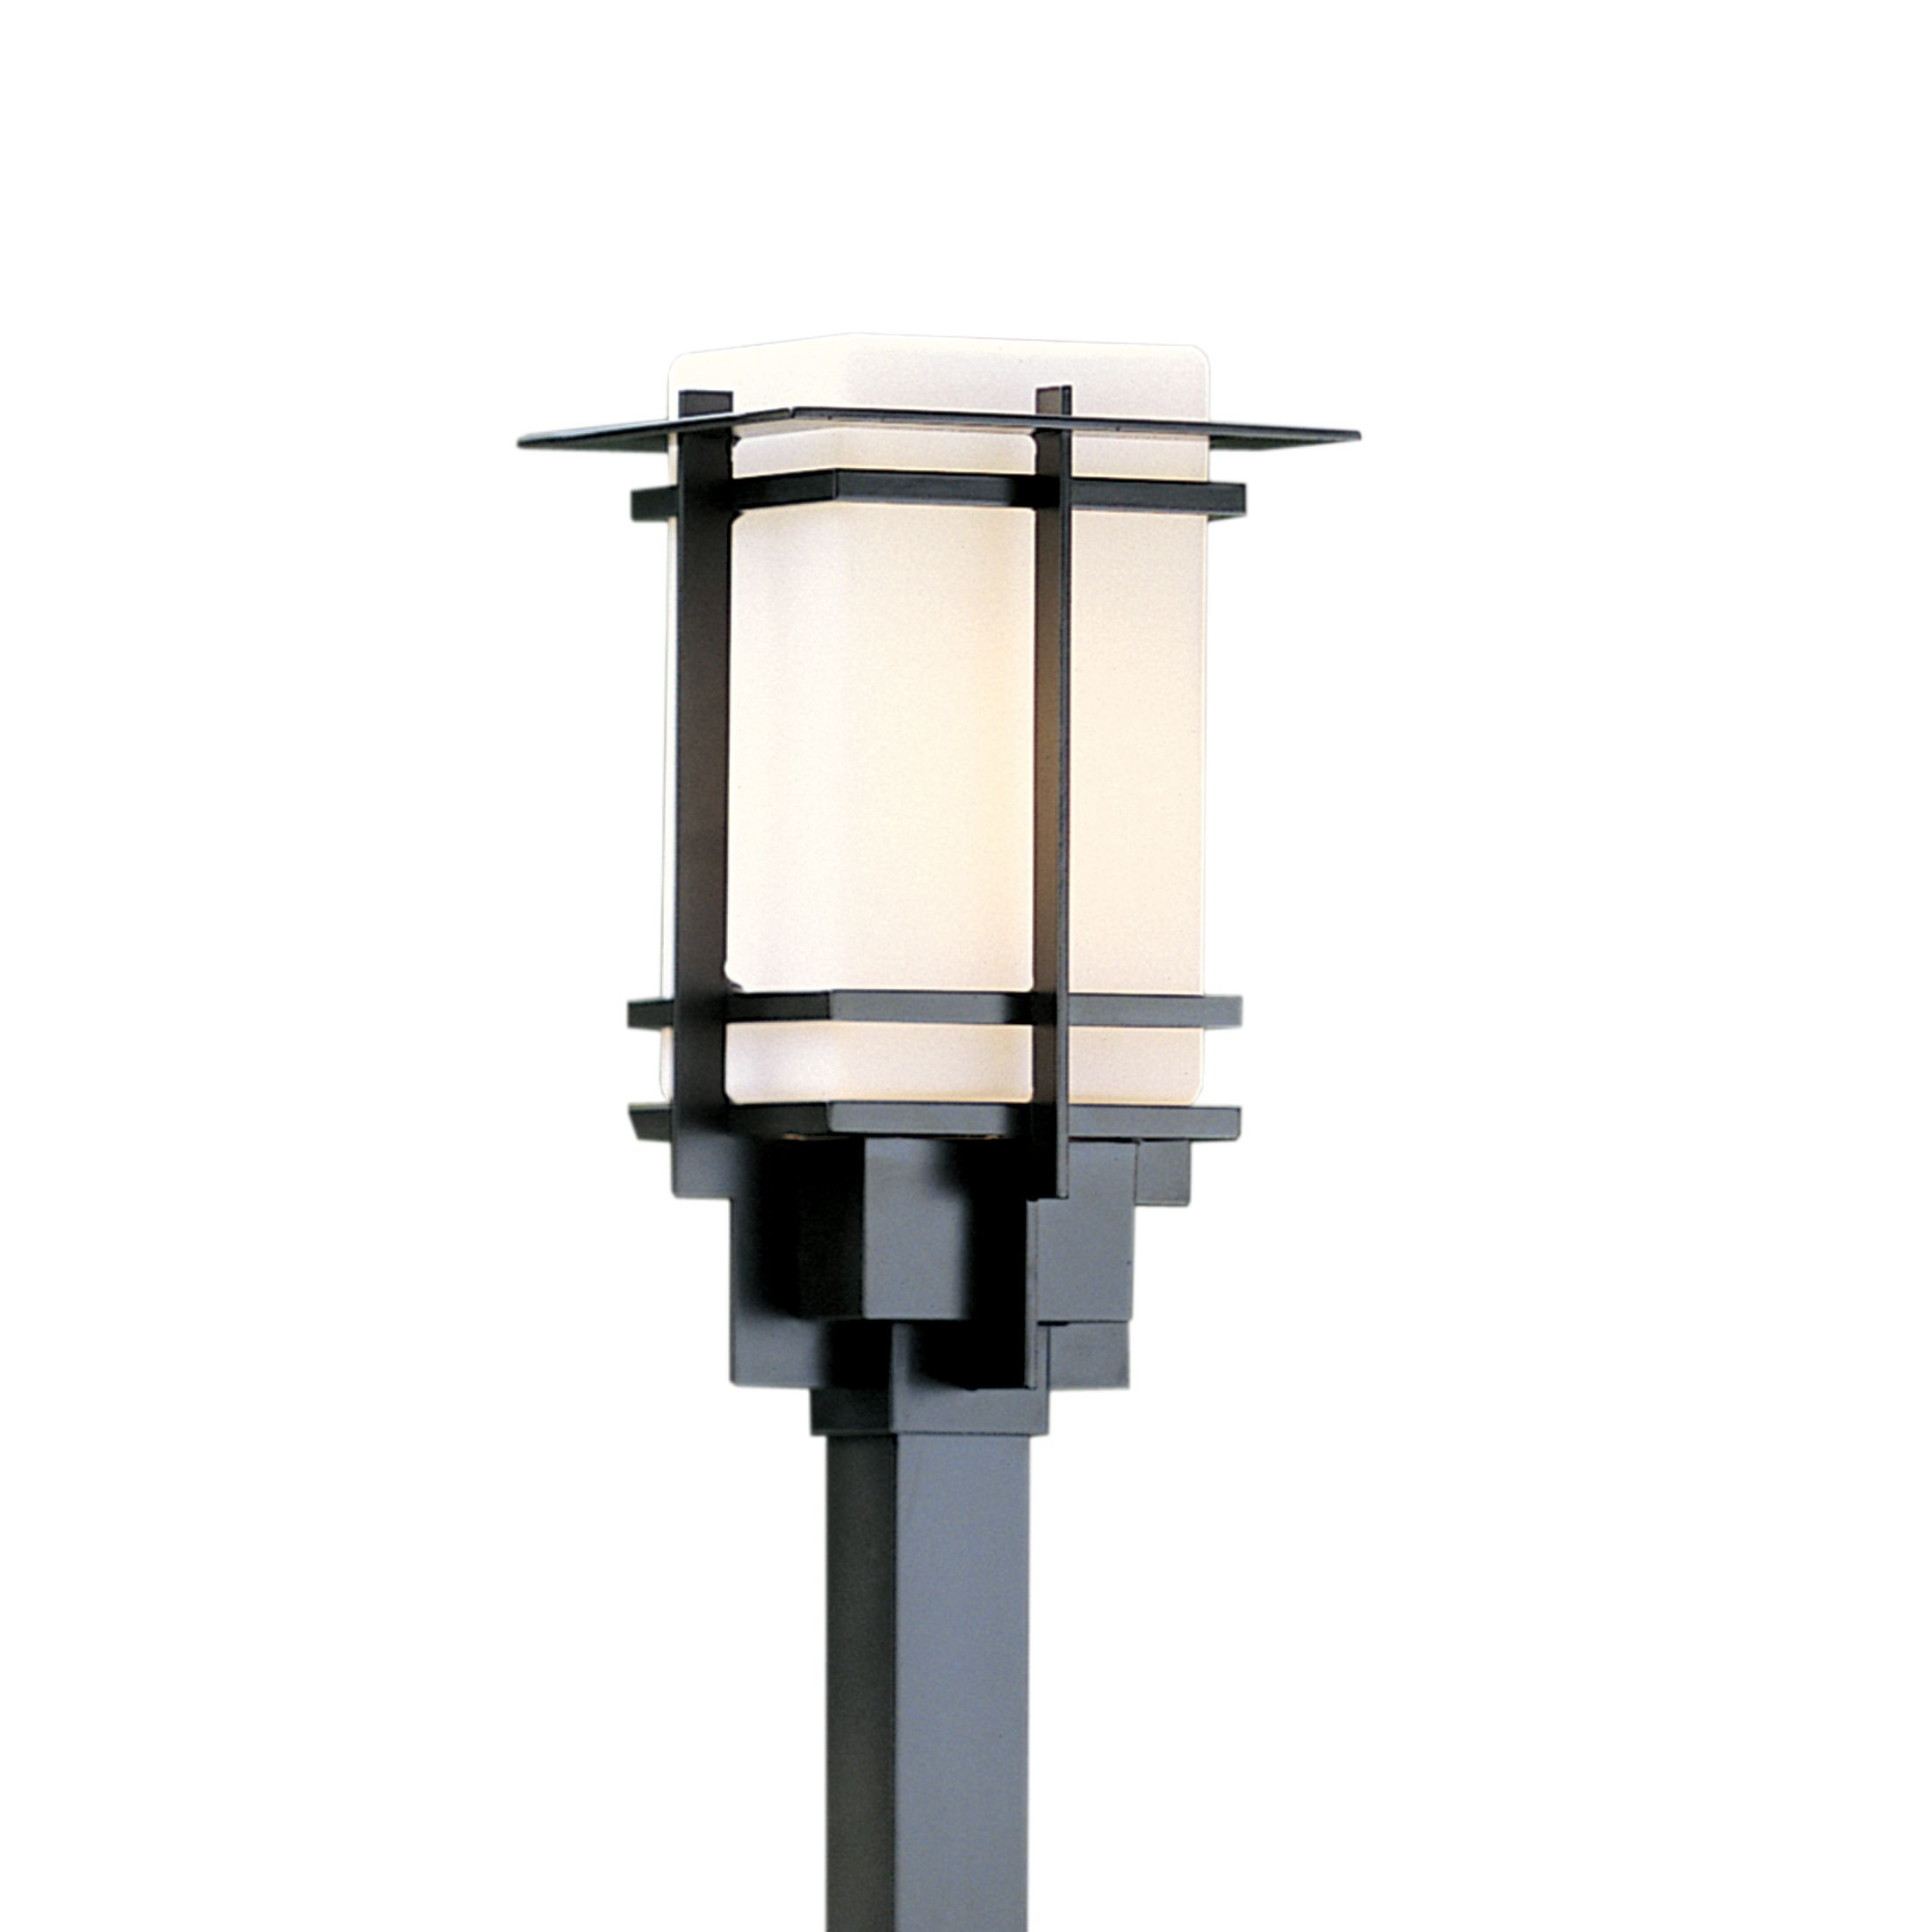 Tourou outdoor post light hubbardton forge product detail tourou outdoor post light arubaitofo Image collections